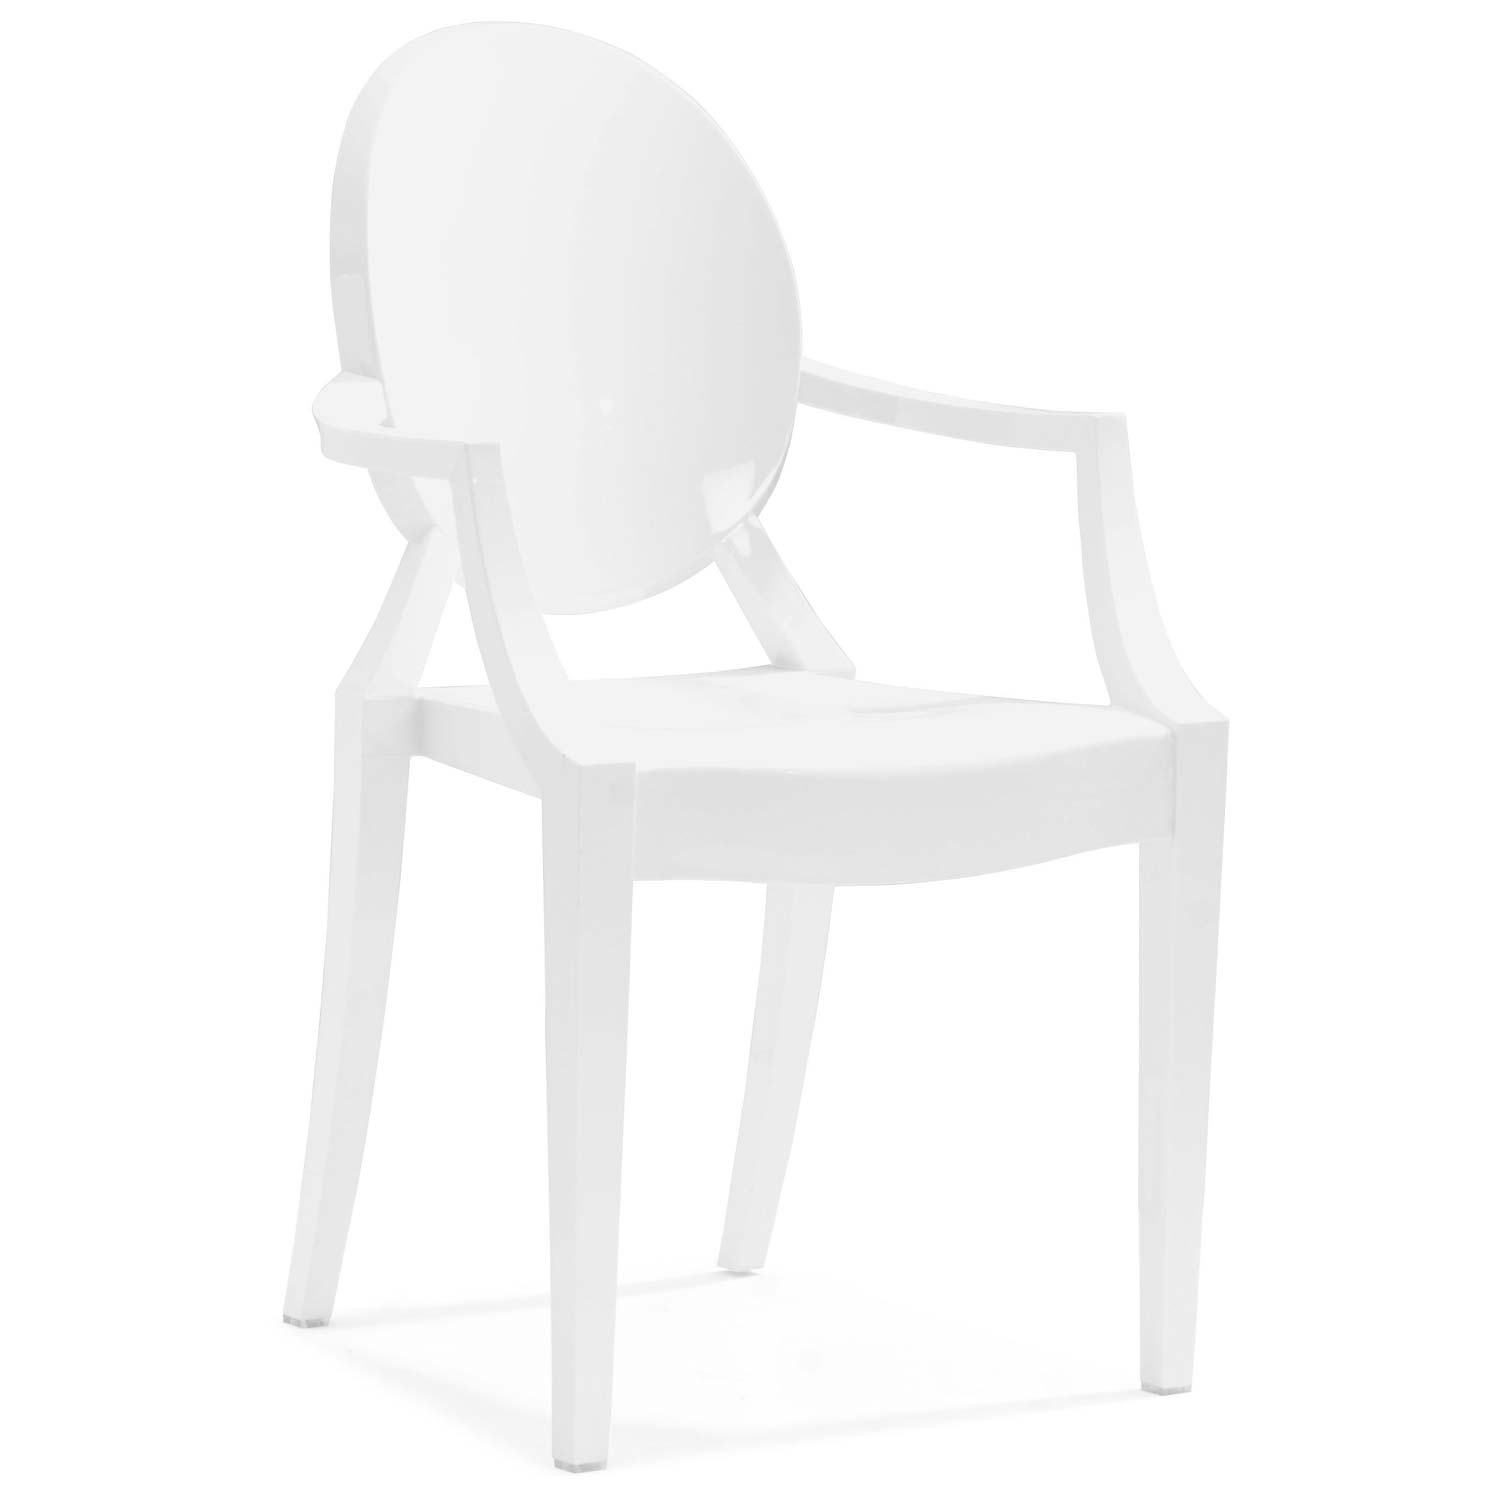 Anime Ghost Style Dining Chair DCG Stores : 106102 1 from www.dcgstores.com size 1500 x 1500 jpeg 49kB